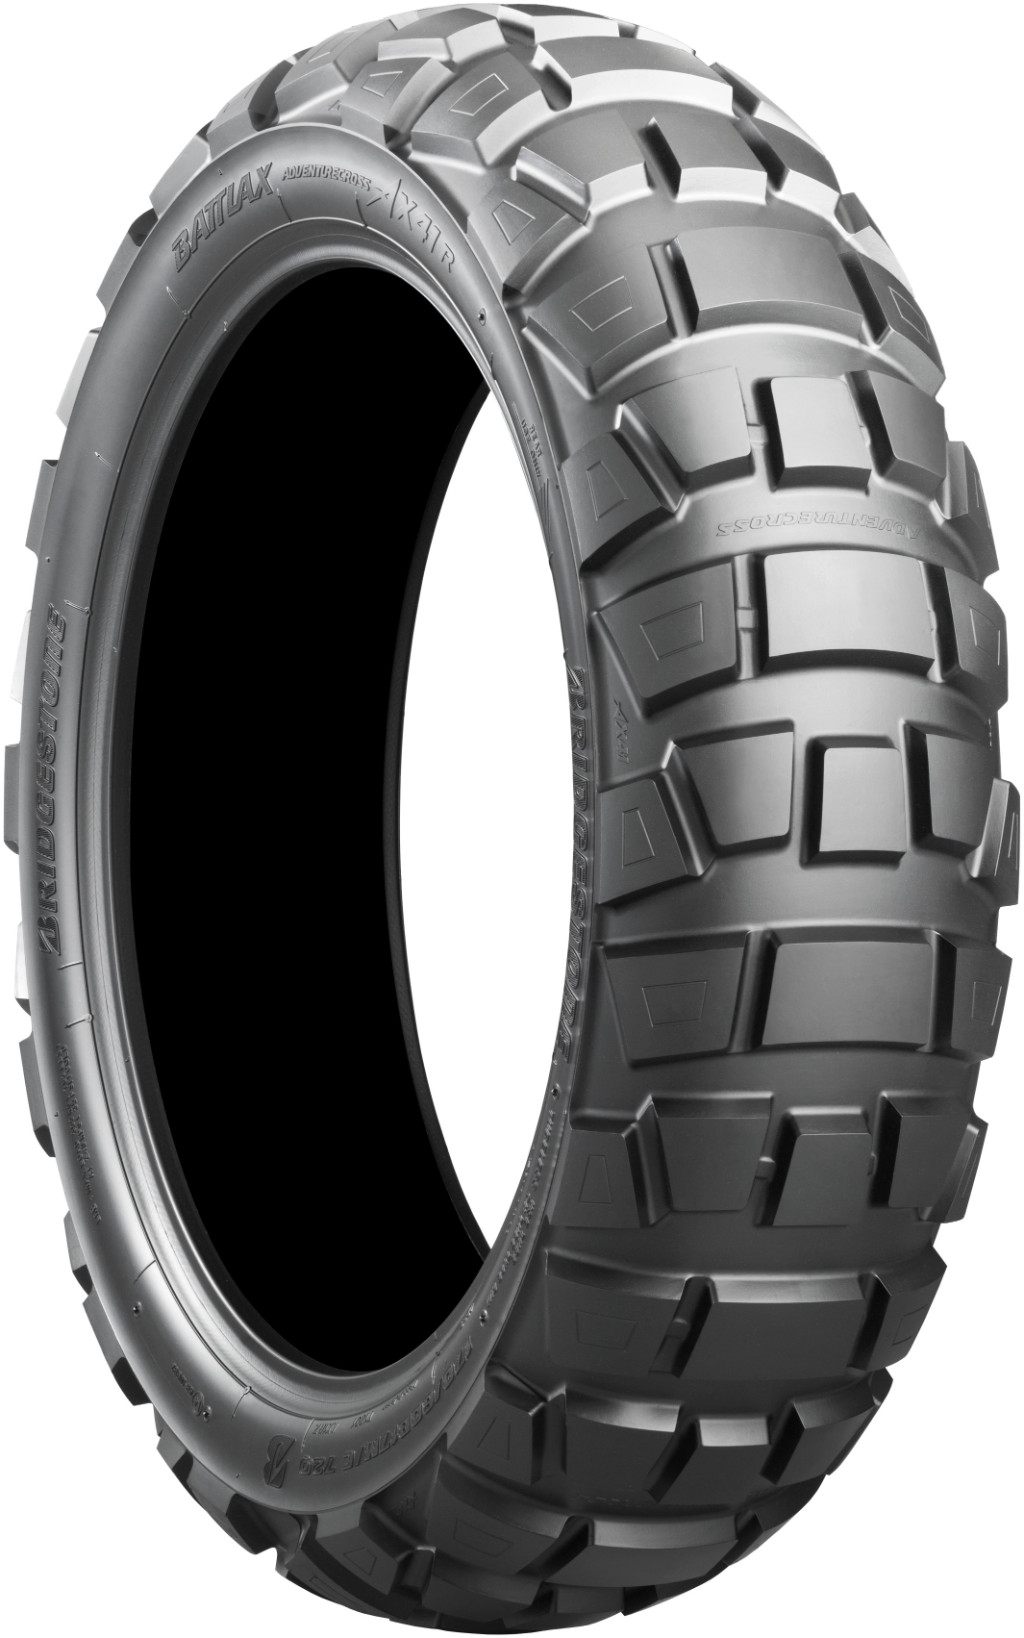 BRIDGESTONE ADVENTURECROSS BATTLAX AX41 [130/80Б 17М/С 65Q] BATTLAX Adventur